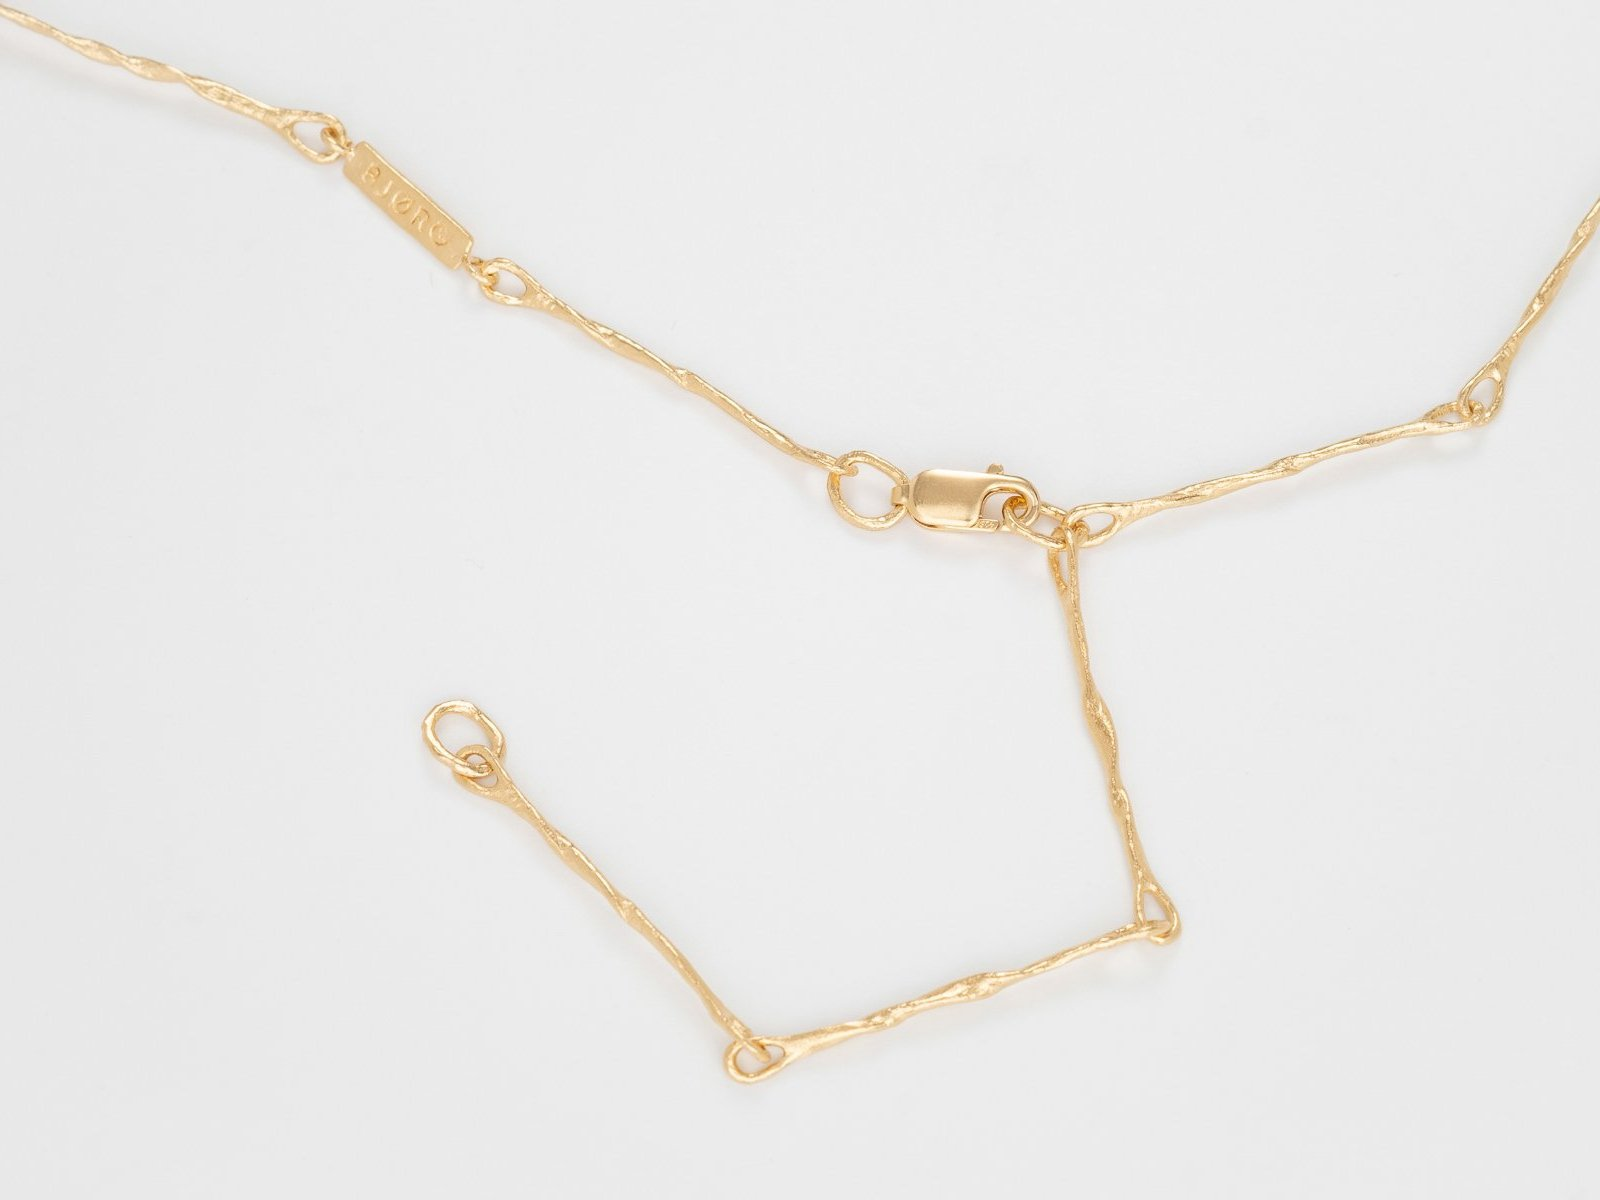 Thin Needle chain long (Web Exclusive)